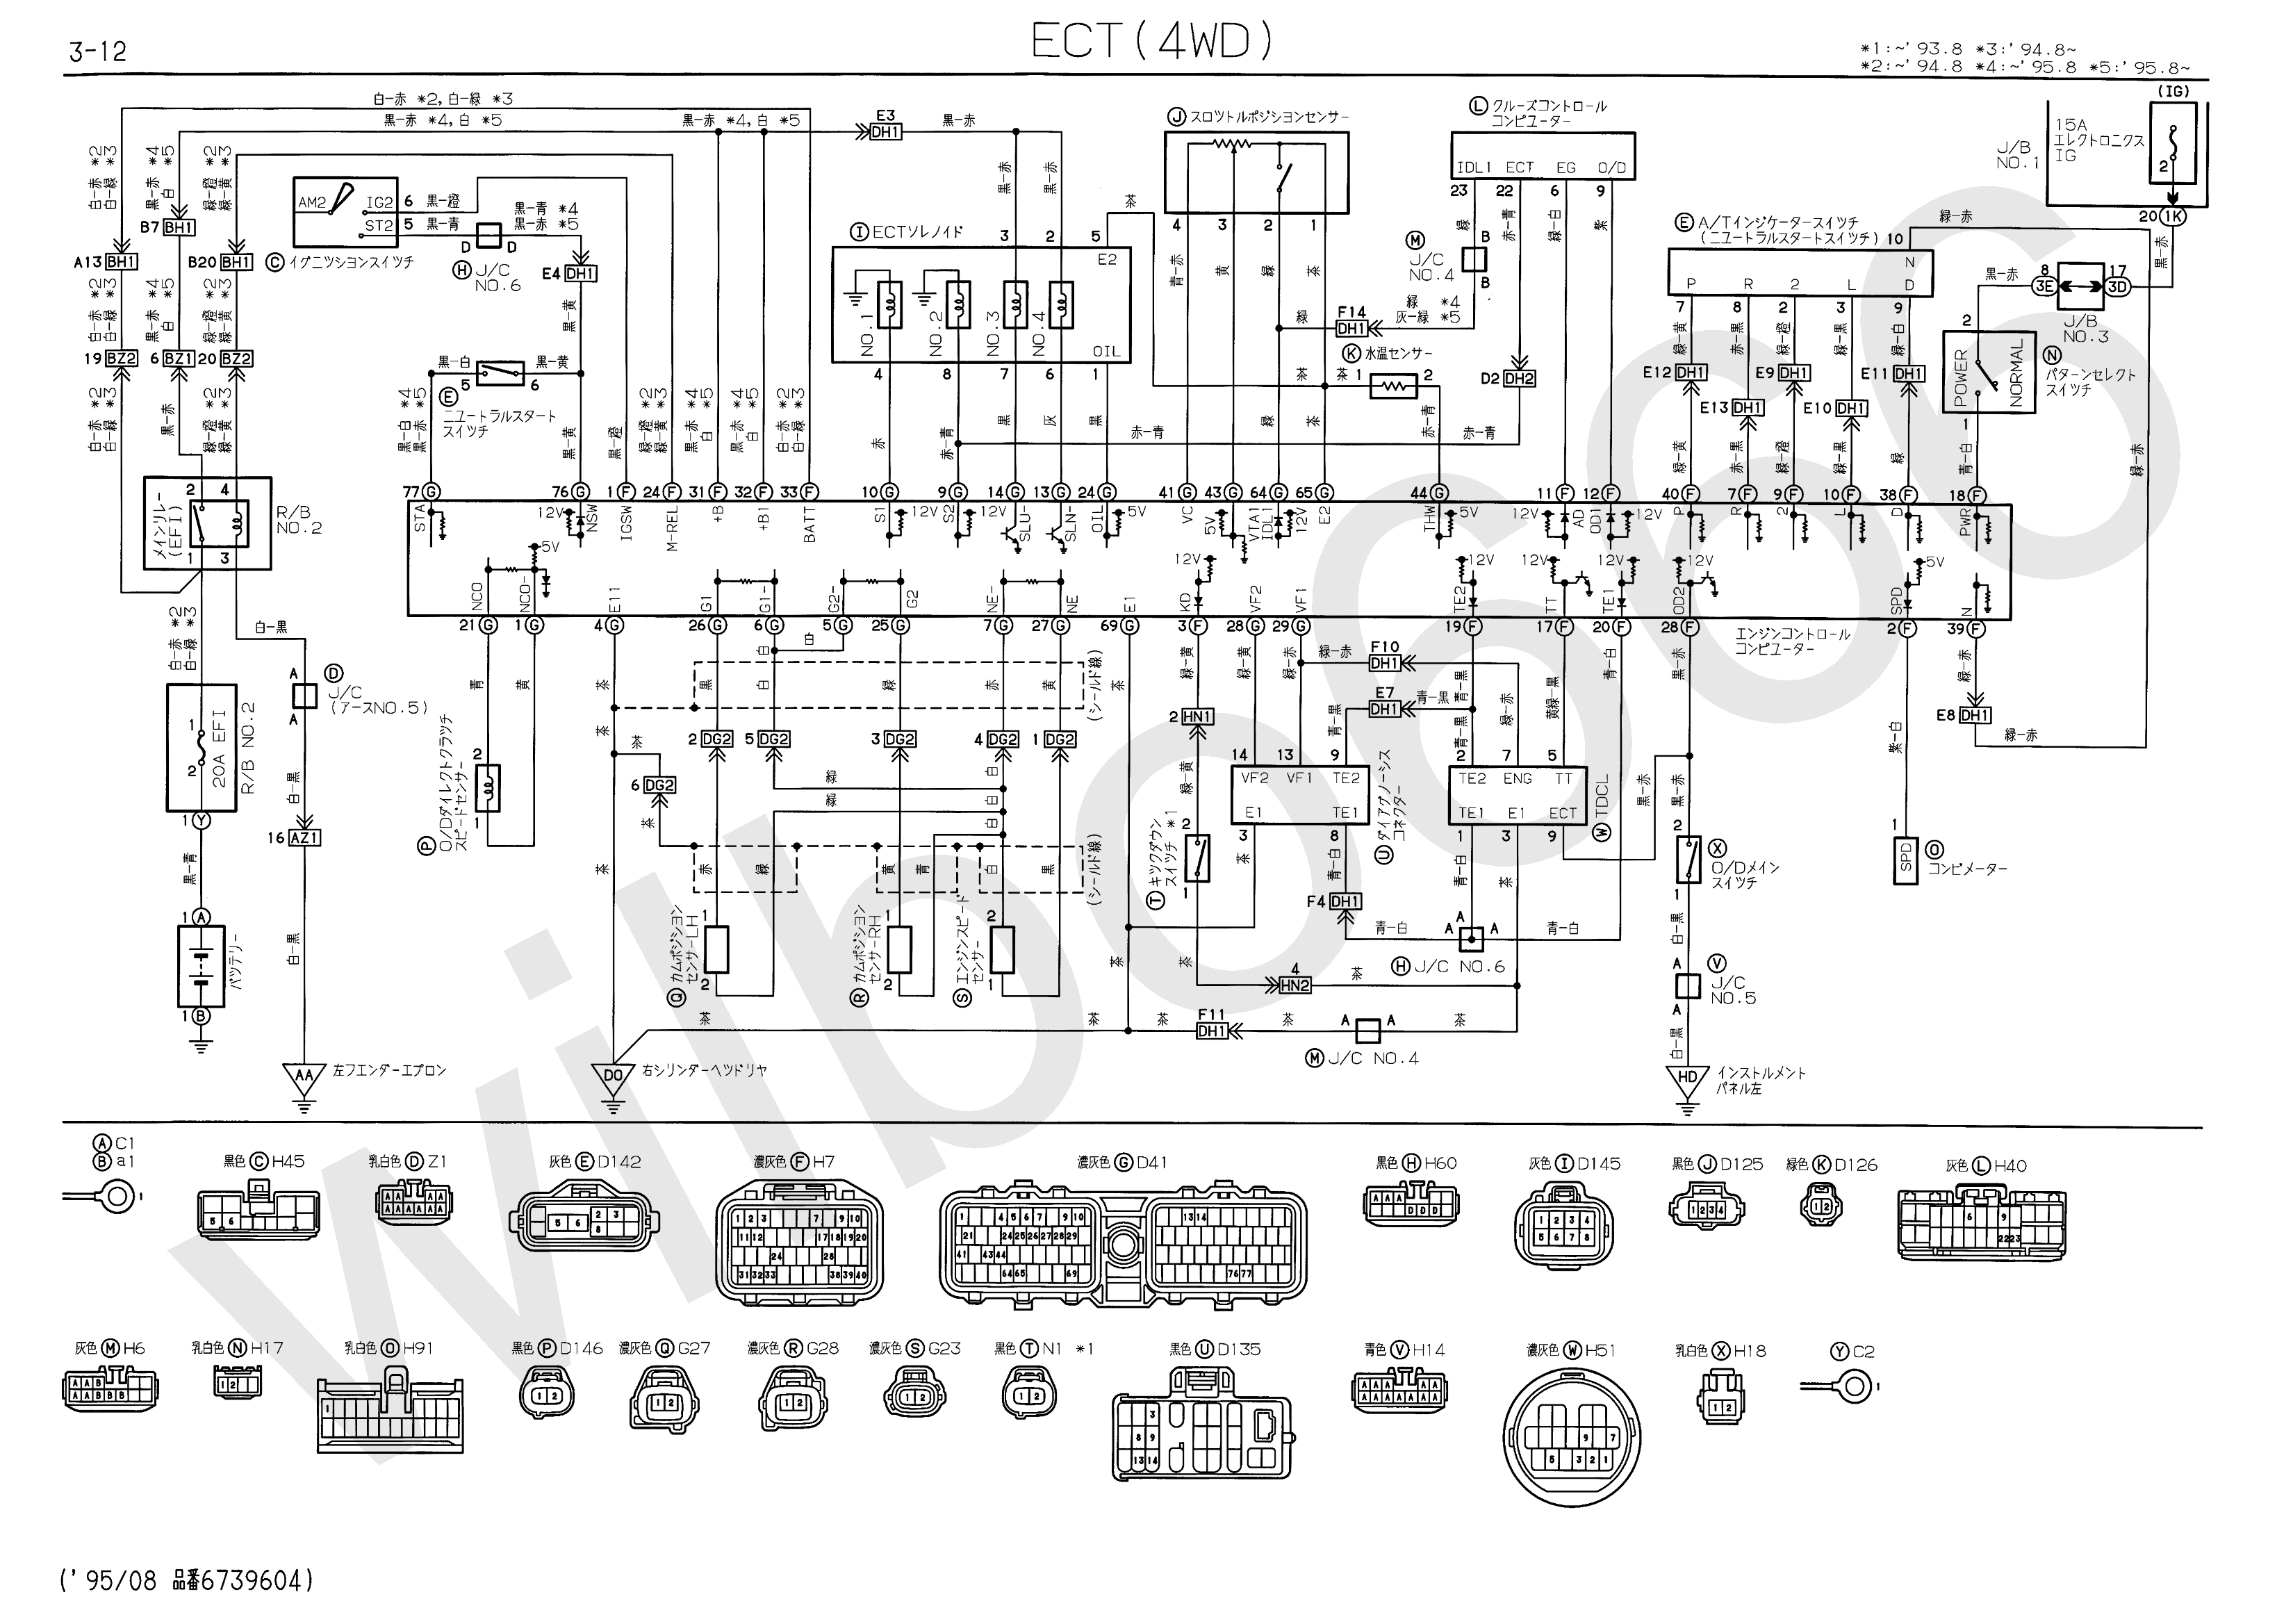 JZS14%23%2C UZS14%23 Electrical Wiring Diagram 6739604 3 12?resize\\\\\\\\\\\\\\\\\\\\\\\\\\\\\\\\\\\\\\\\\\\\\\\\\\\\\\\\\\\\\\\\\\\\\\\\\\\\\\\\\\\\\\\\\\\\\\\\\\\\\\\\\\\\\\\\\\\\\\\\\\\\\\\\\\\\\\\\\\\\\\\\\\\\\\\\\\\\\\\\\\\\\\\\\\\\\\\\\\\\\\\\\\\\\\\\\\\\\\\\\\\\\\\\\\\\\\\\\\\\\\\=665%2C471 electric forklift wiring diagram electric wiring diagrams collection  at soozxer.org